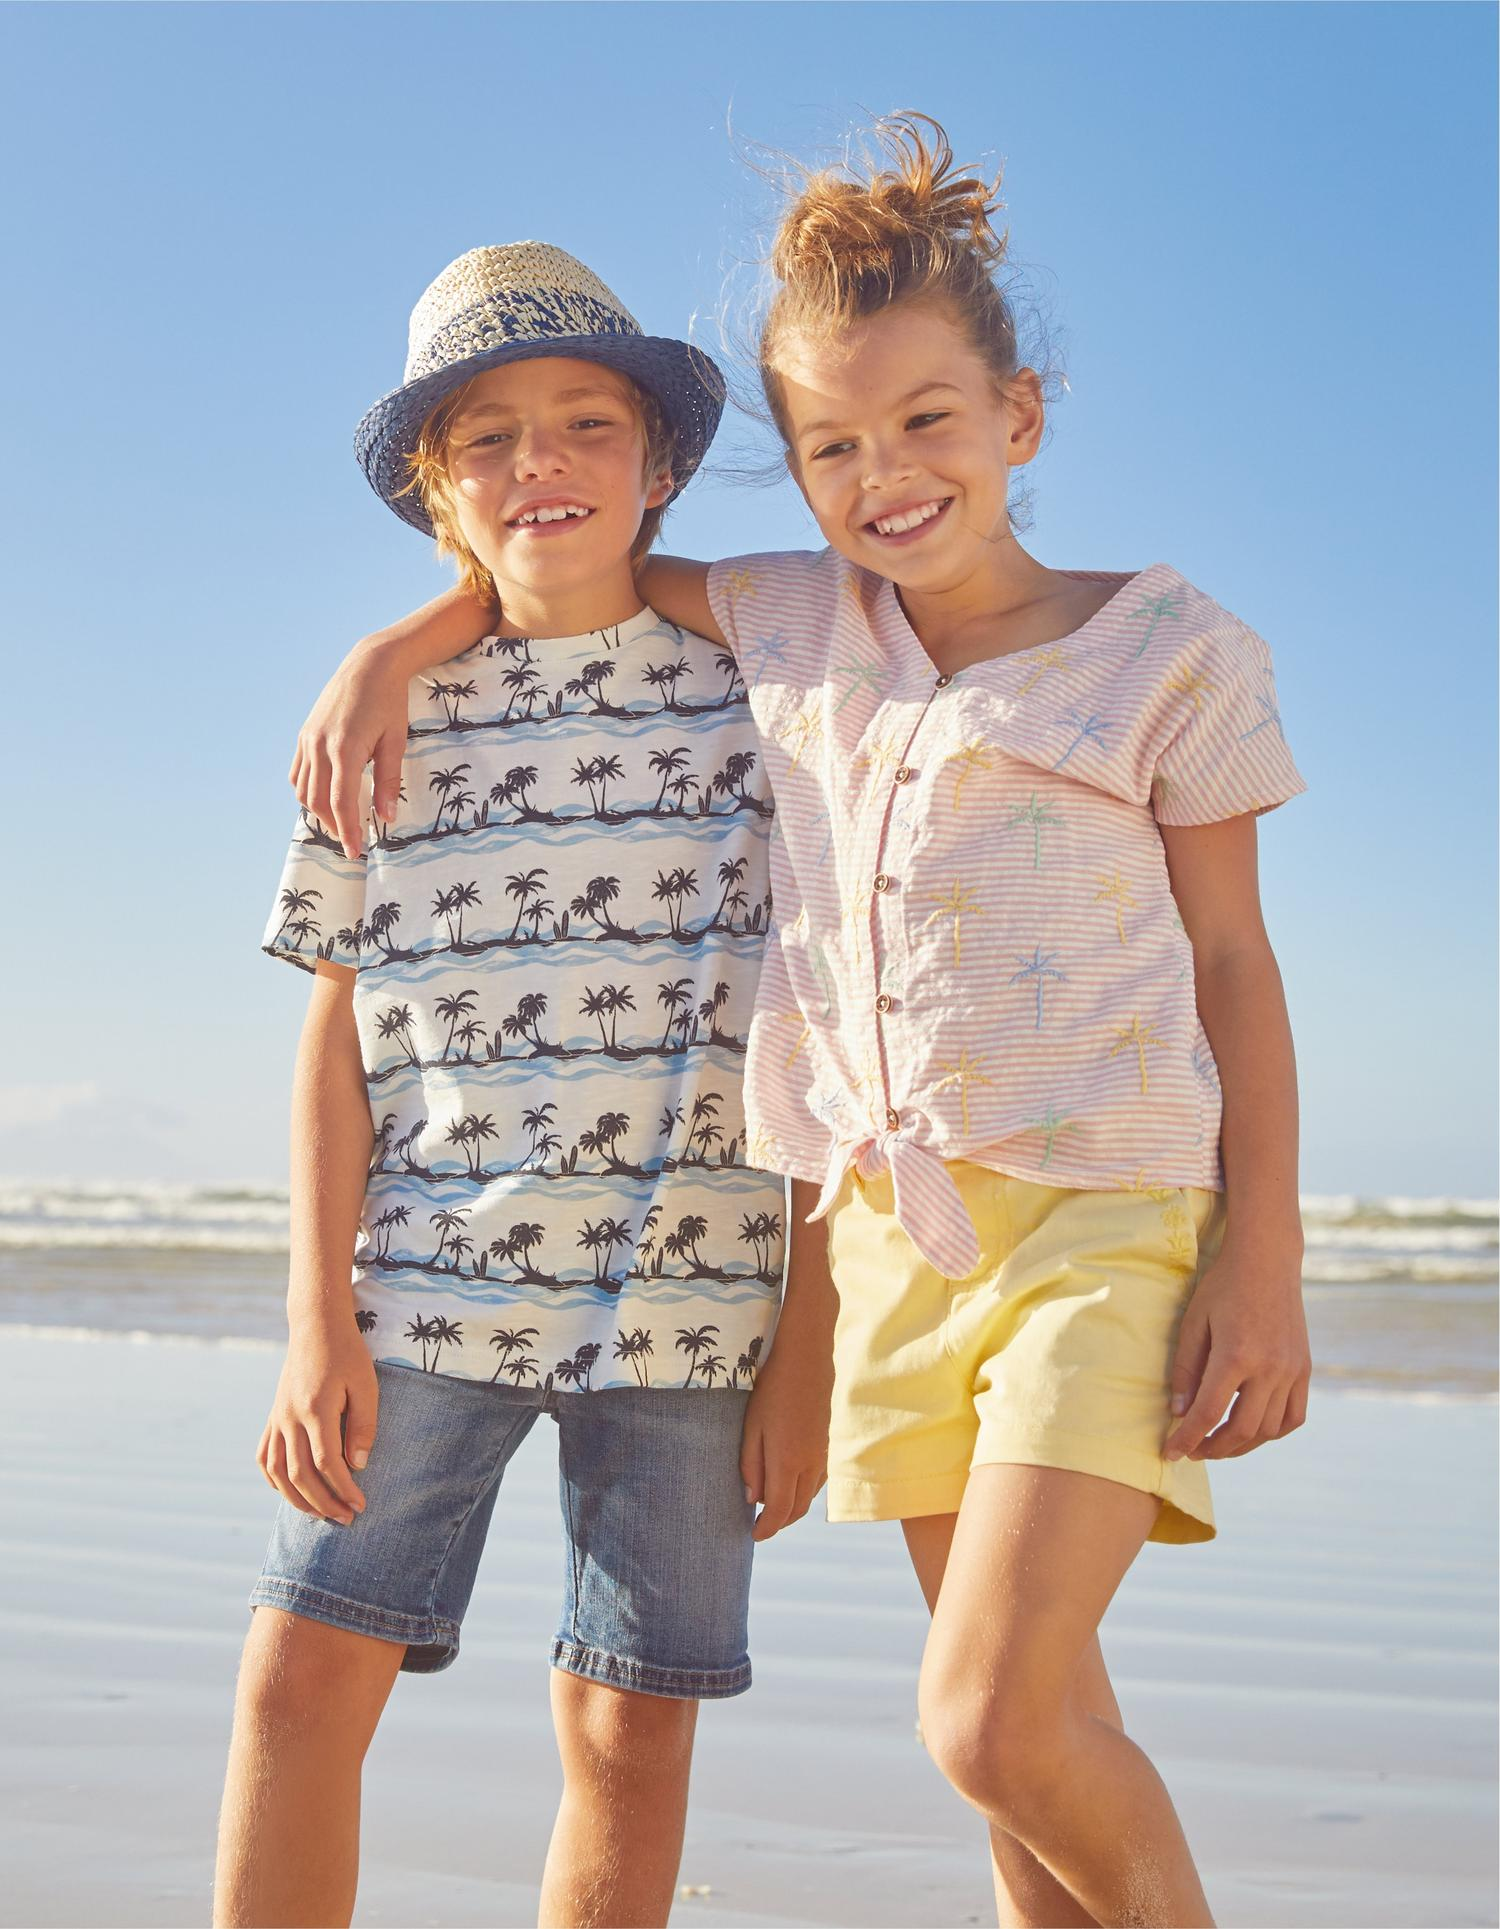 Group shot of a girl and boy fatface model wearing shorts and tee shirts